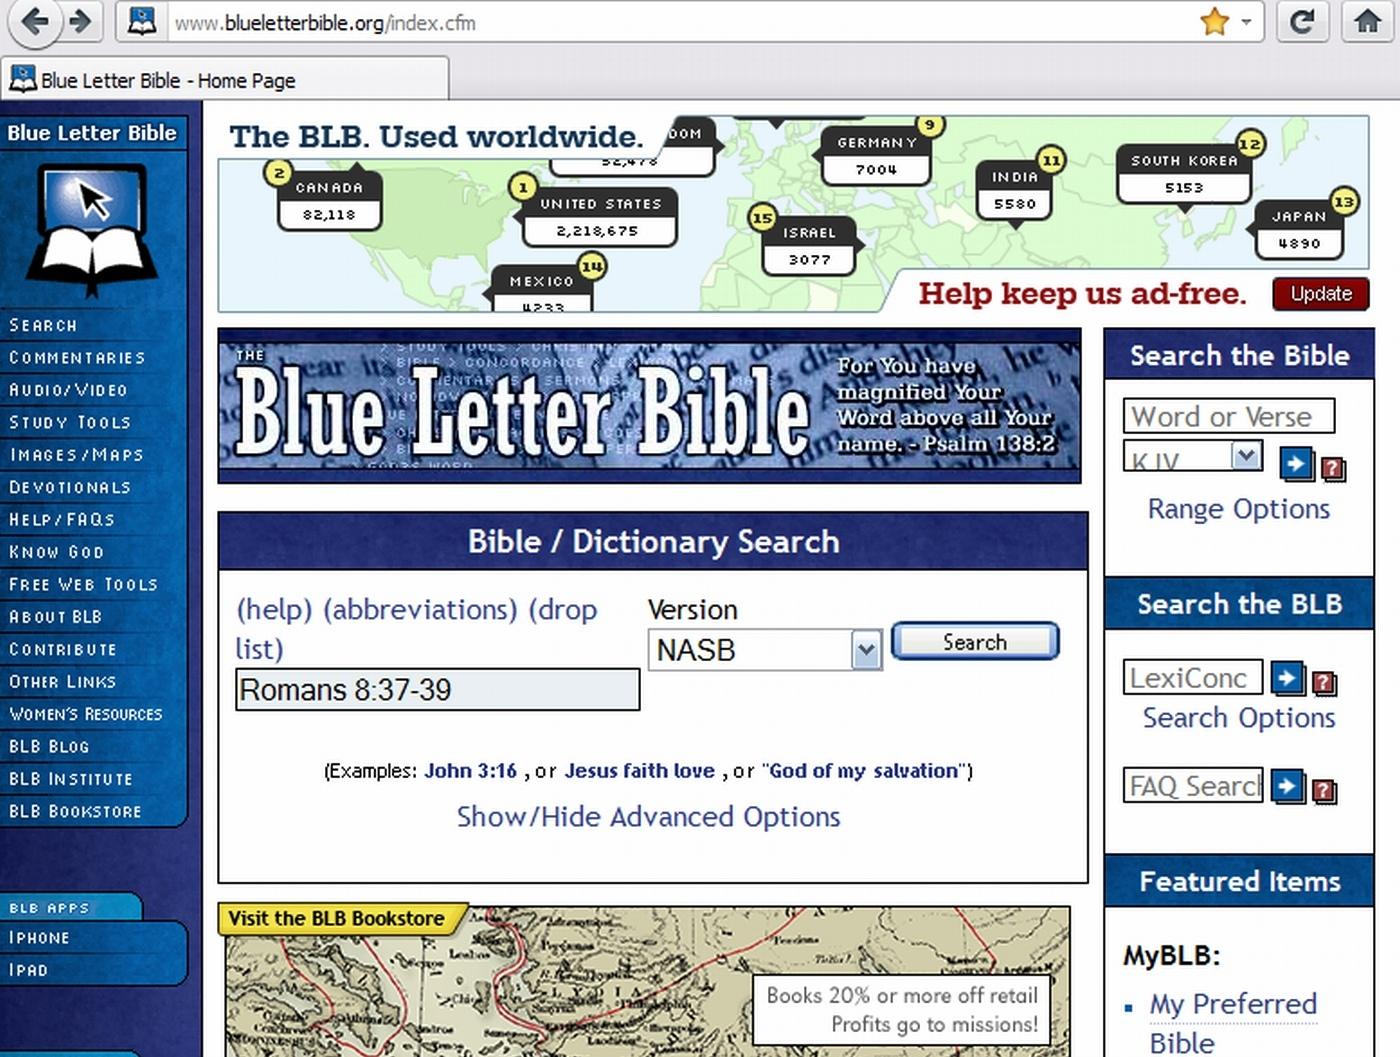 blue letter bible classic blue letter bible 20649 | BlueLetterBible Homepage02